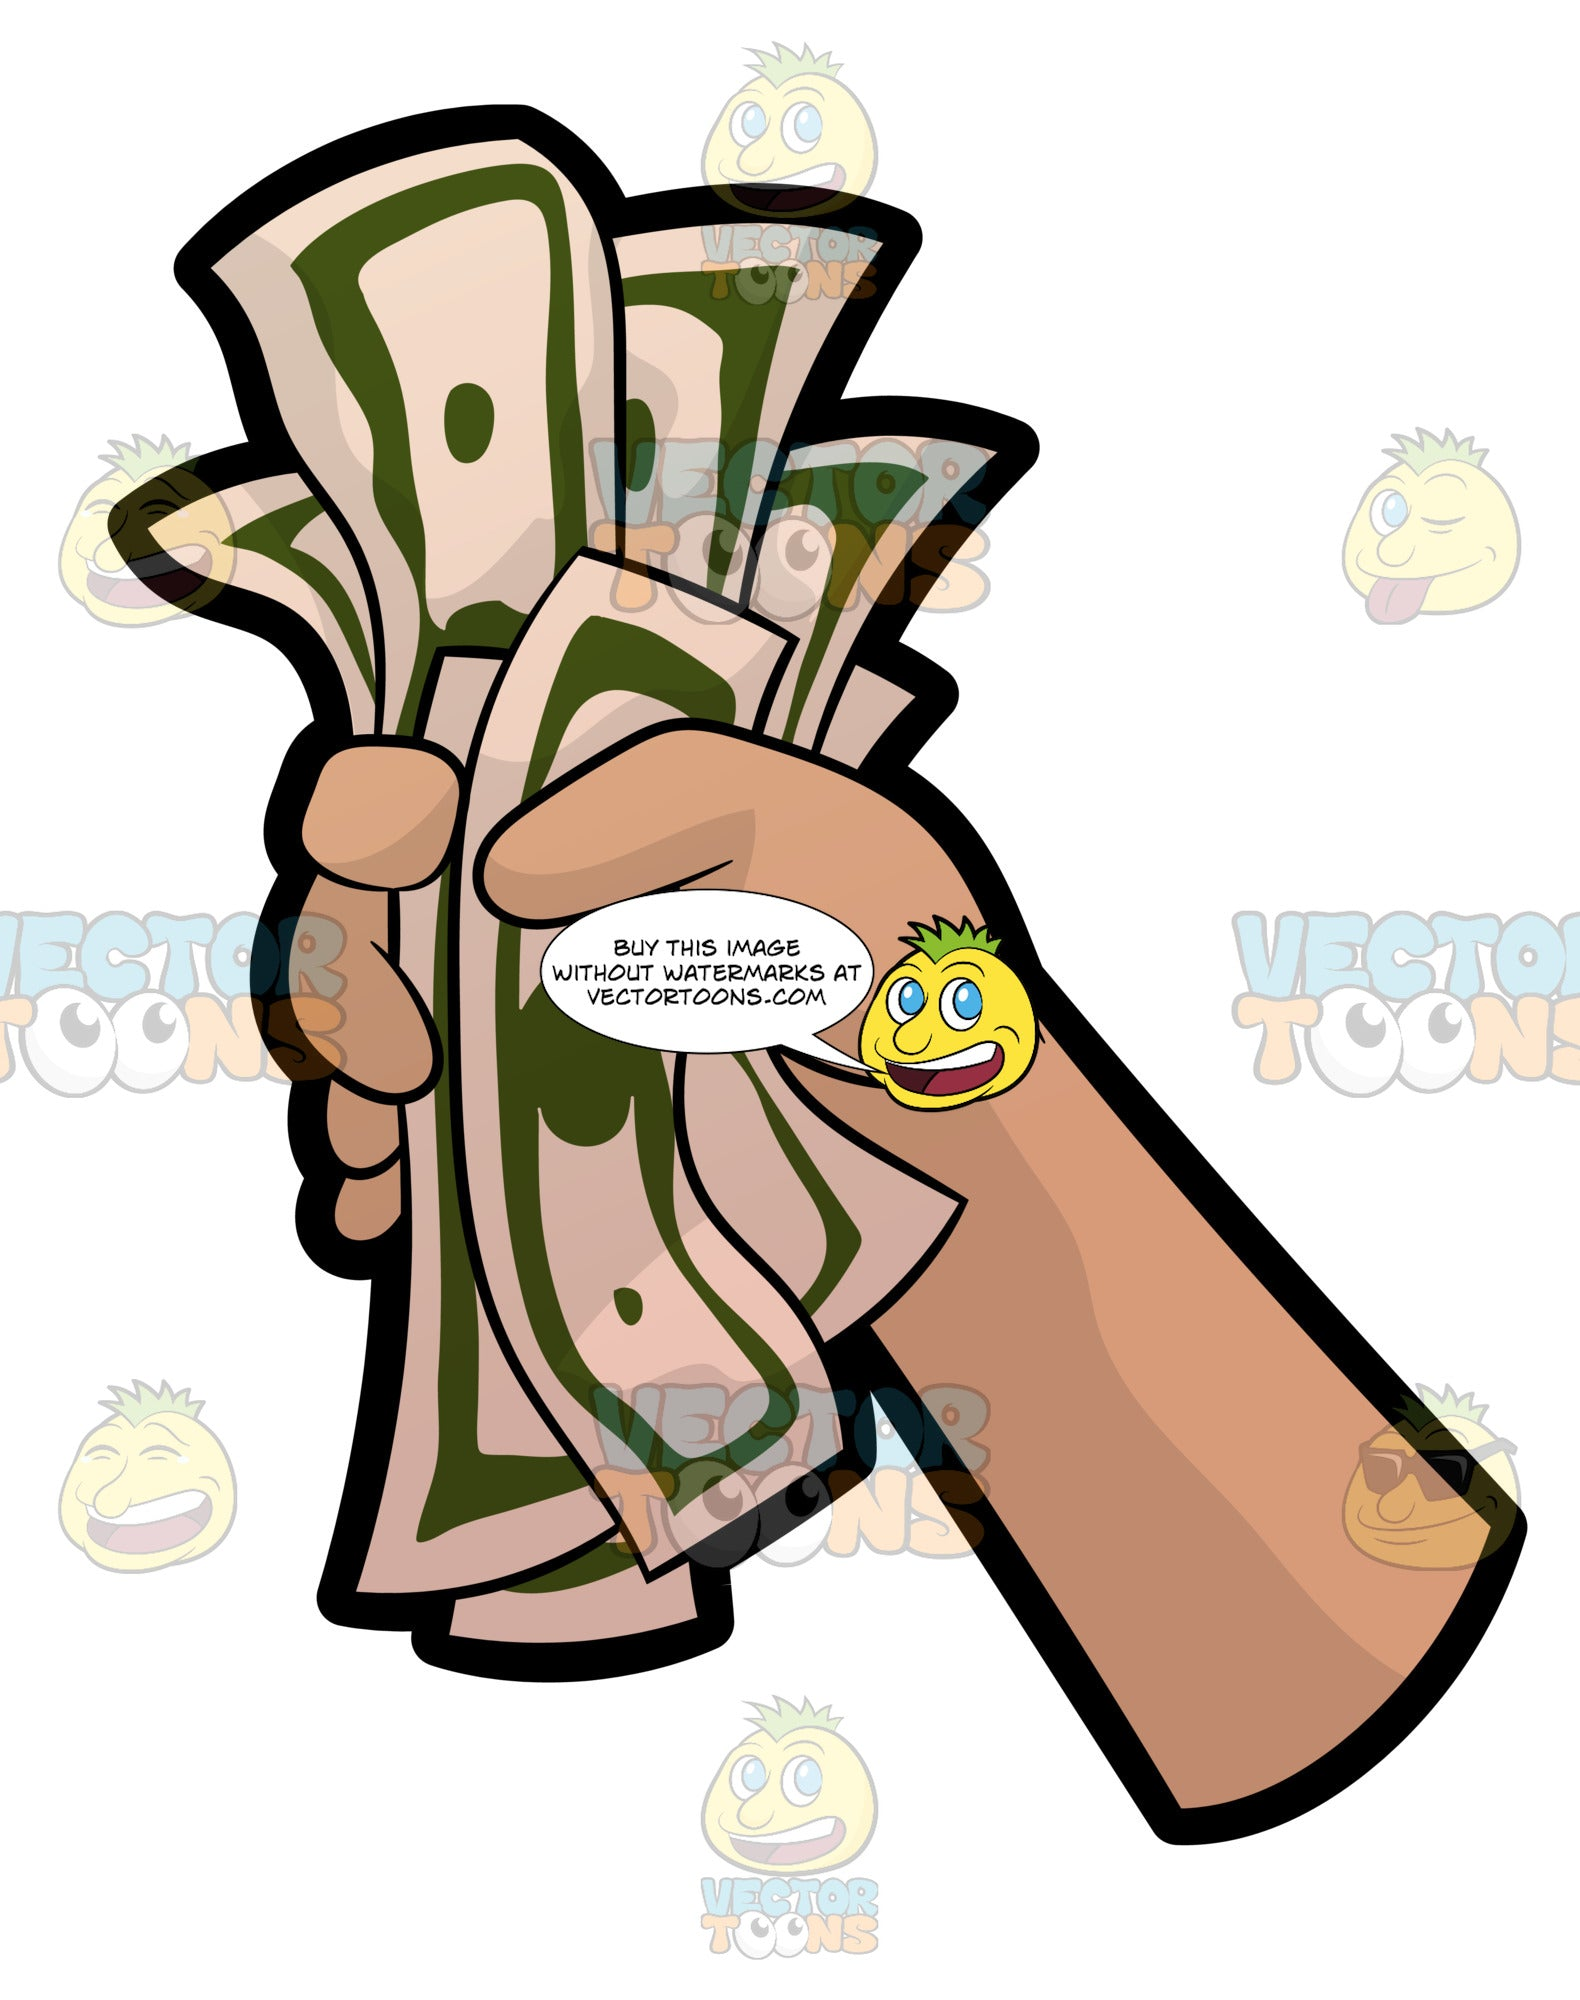 A Hand Holding A Fist Full Of Money